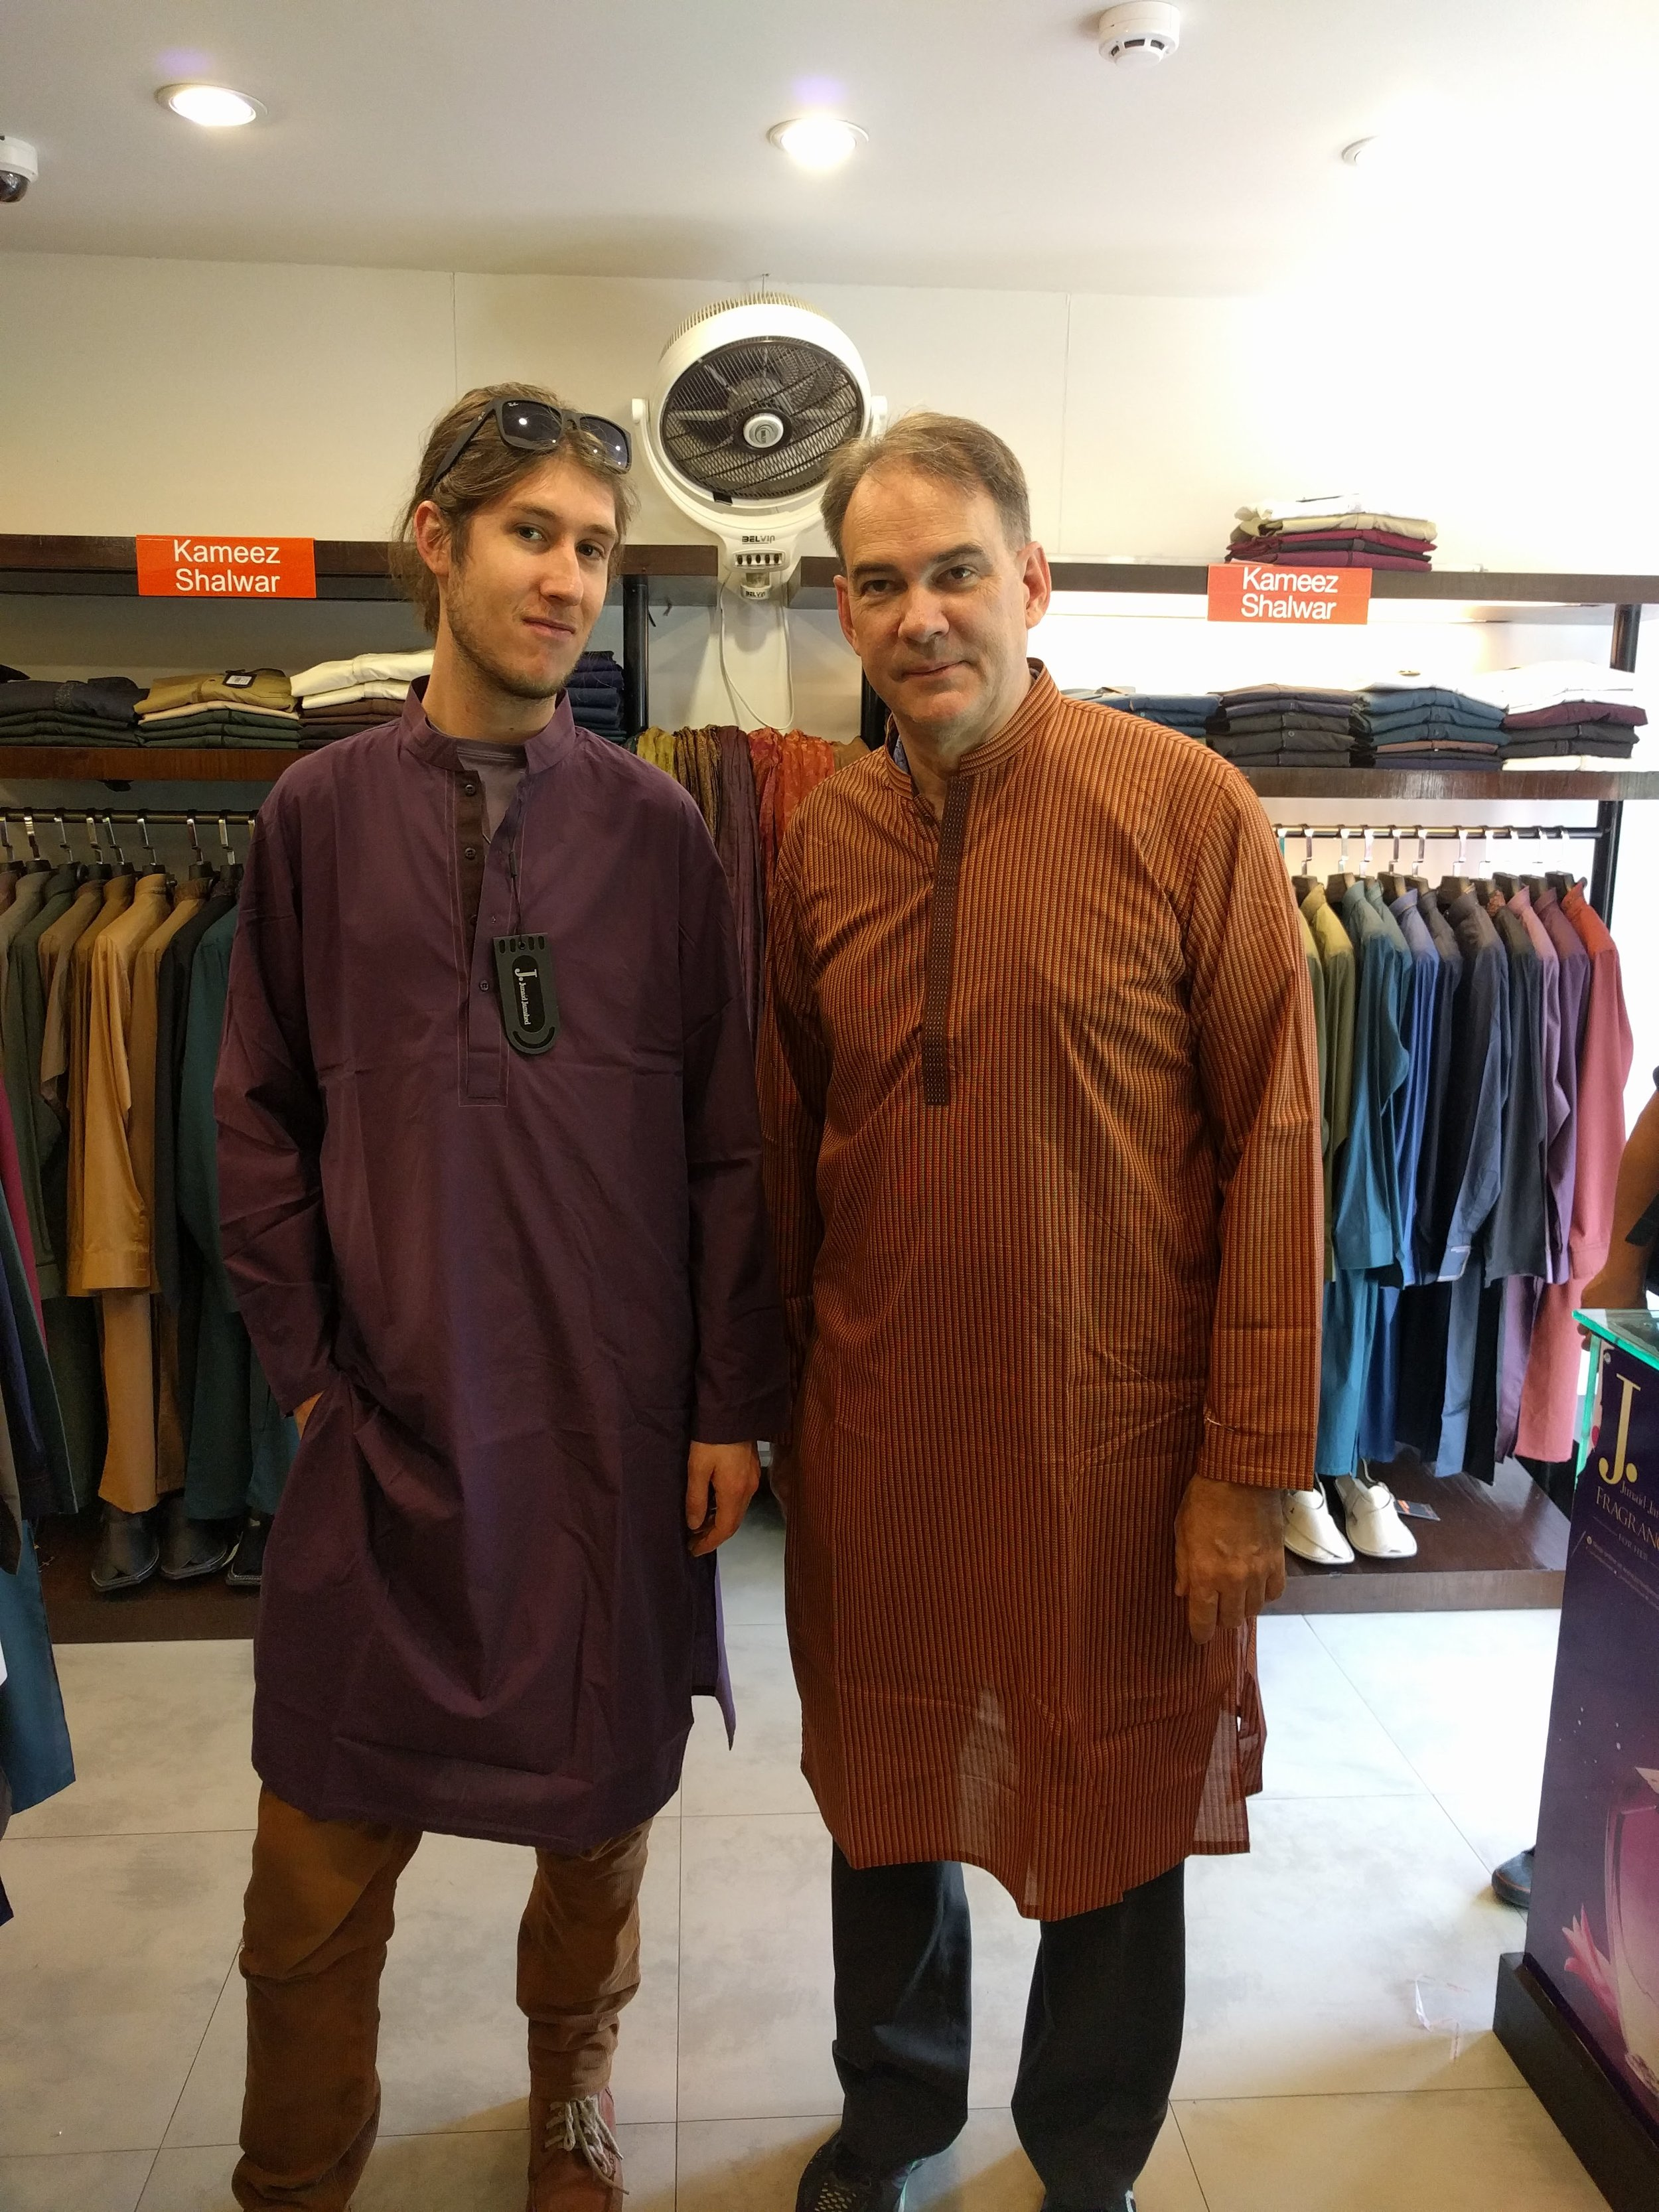 Kyle and John (our gracious host for the trip) stopped in to try on some traditional Pakistani clothing.